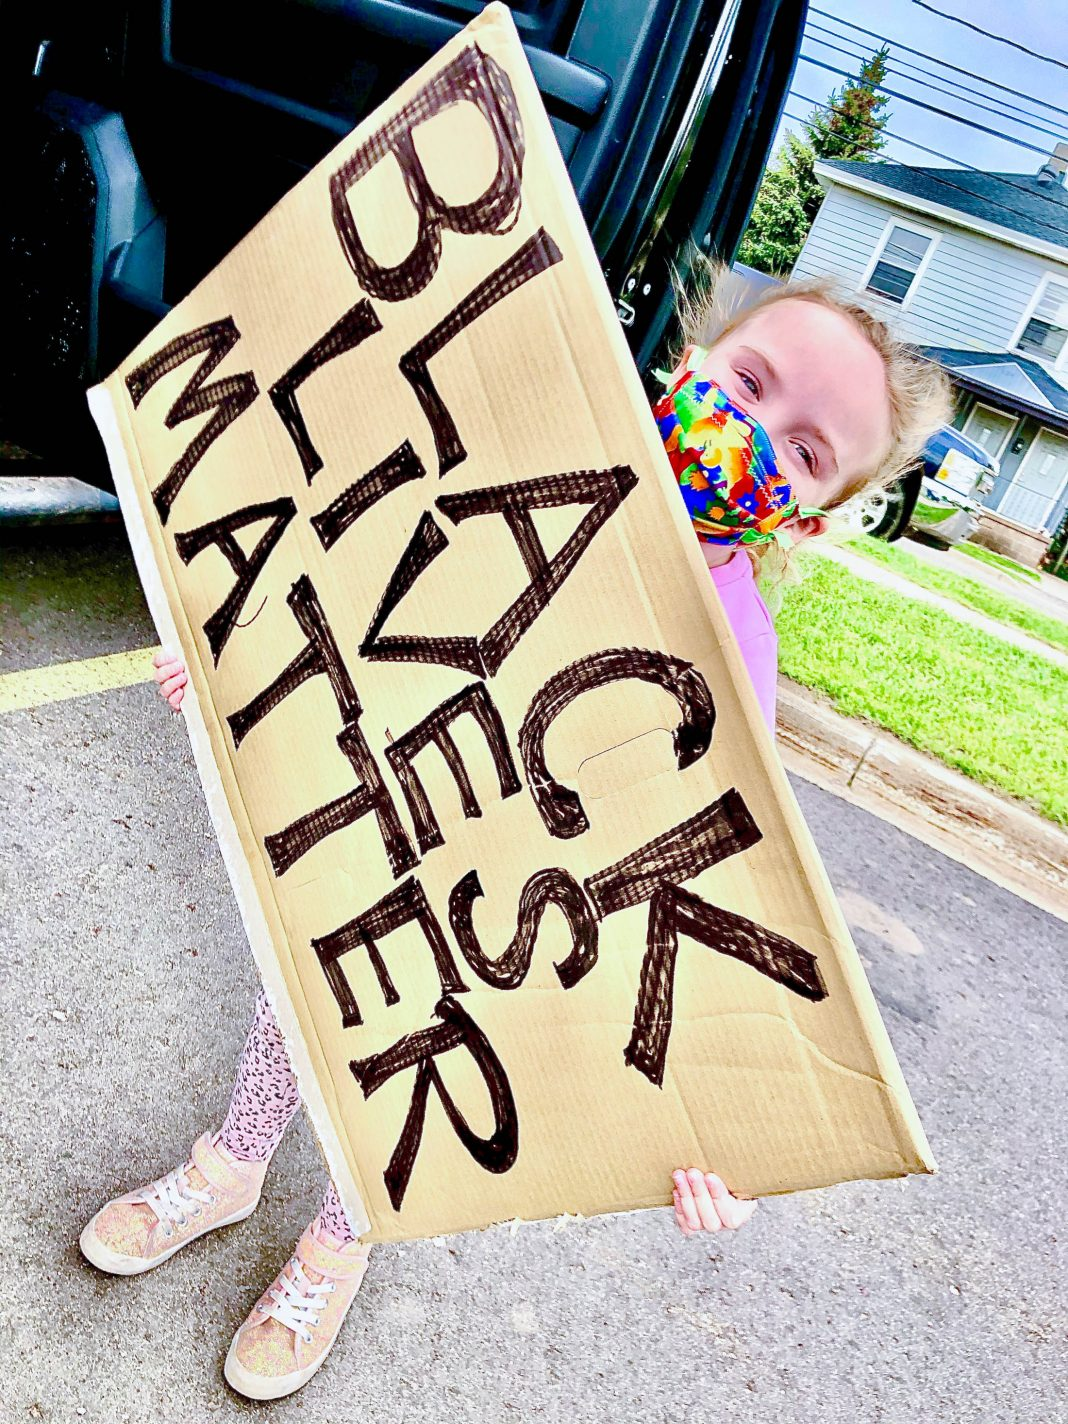 If color-blindness isn't the goal--& it's decidedly not--how do we raise anti-racist white kids in a town not known for its diversity, but for its homogeneity?